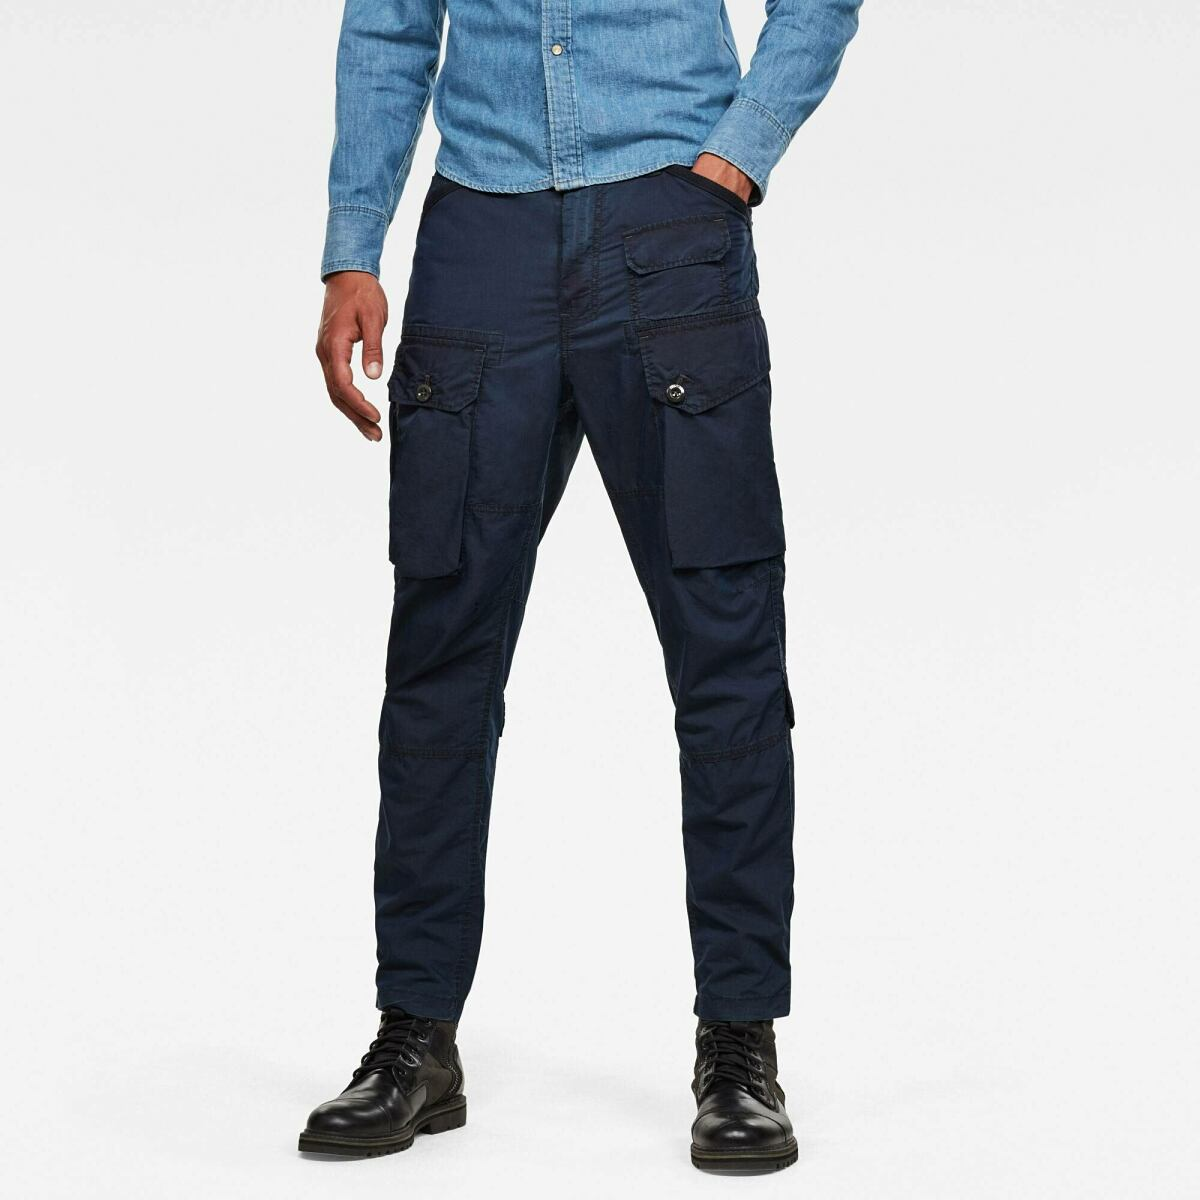 Dark blue Man Pants Jungle Relaxed Tapered Cargo Pants G-Star MEN